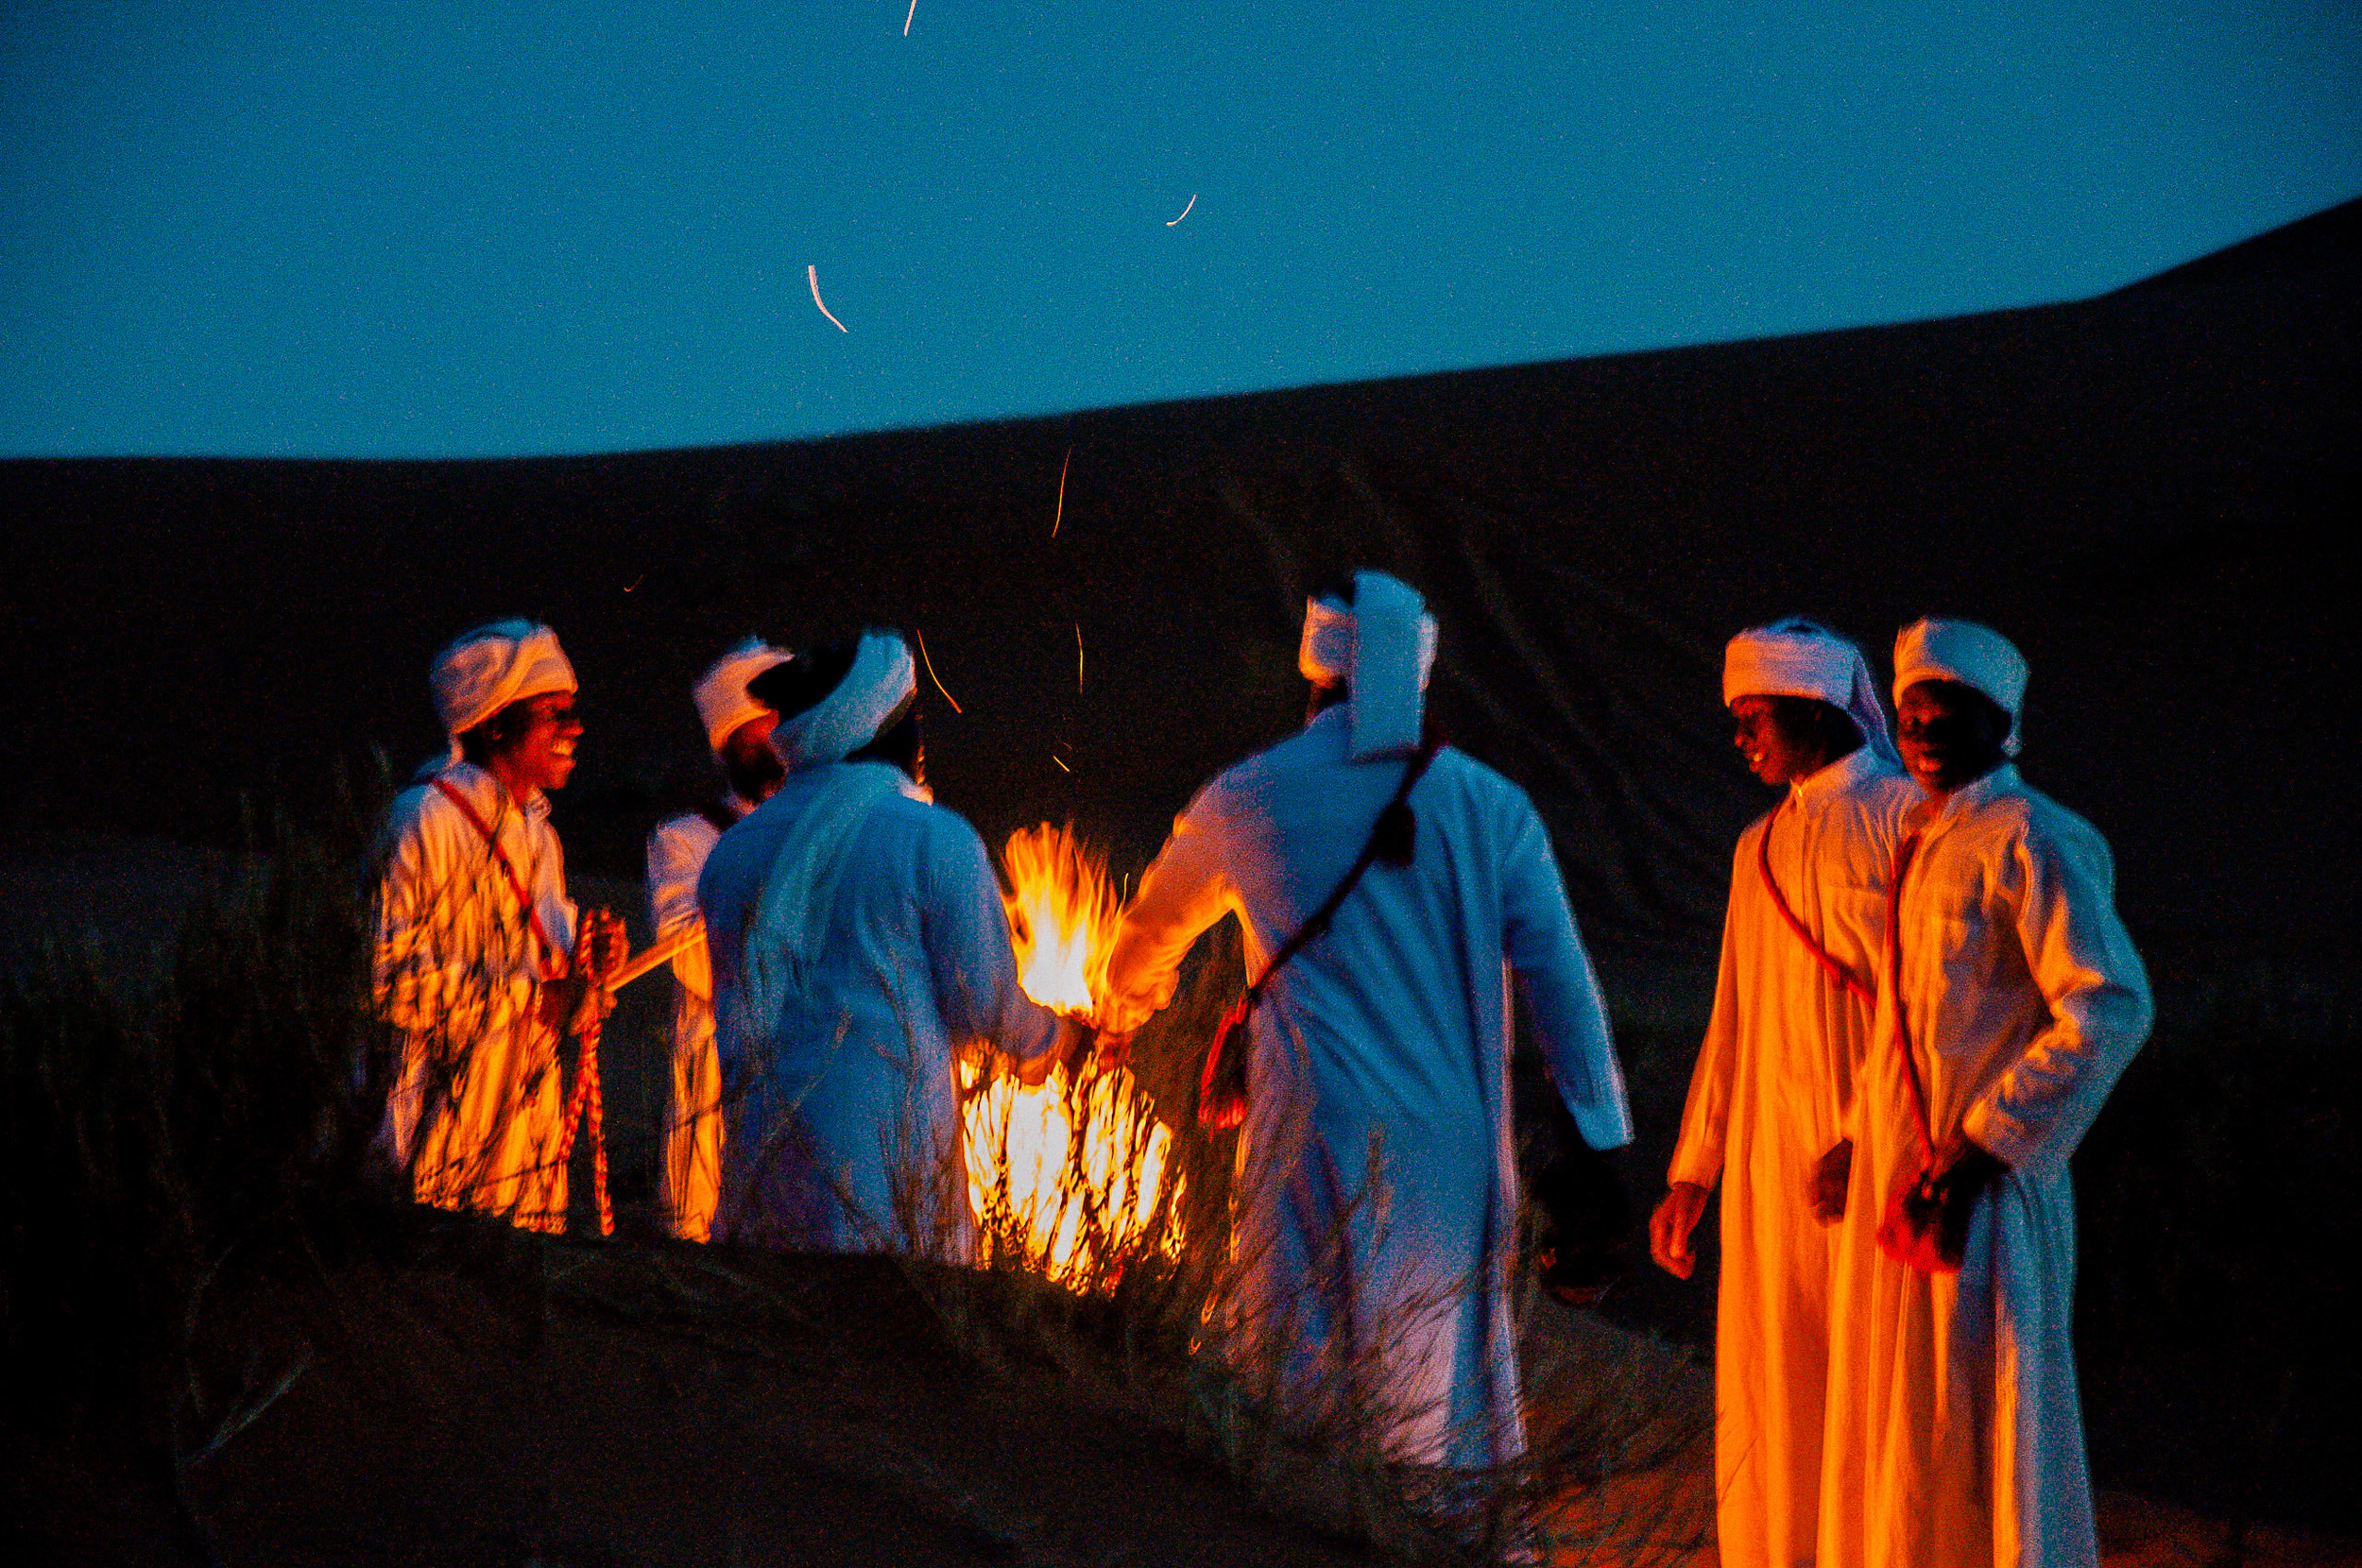 Locals performing their ceremonial activities by the fire.